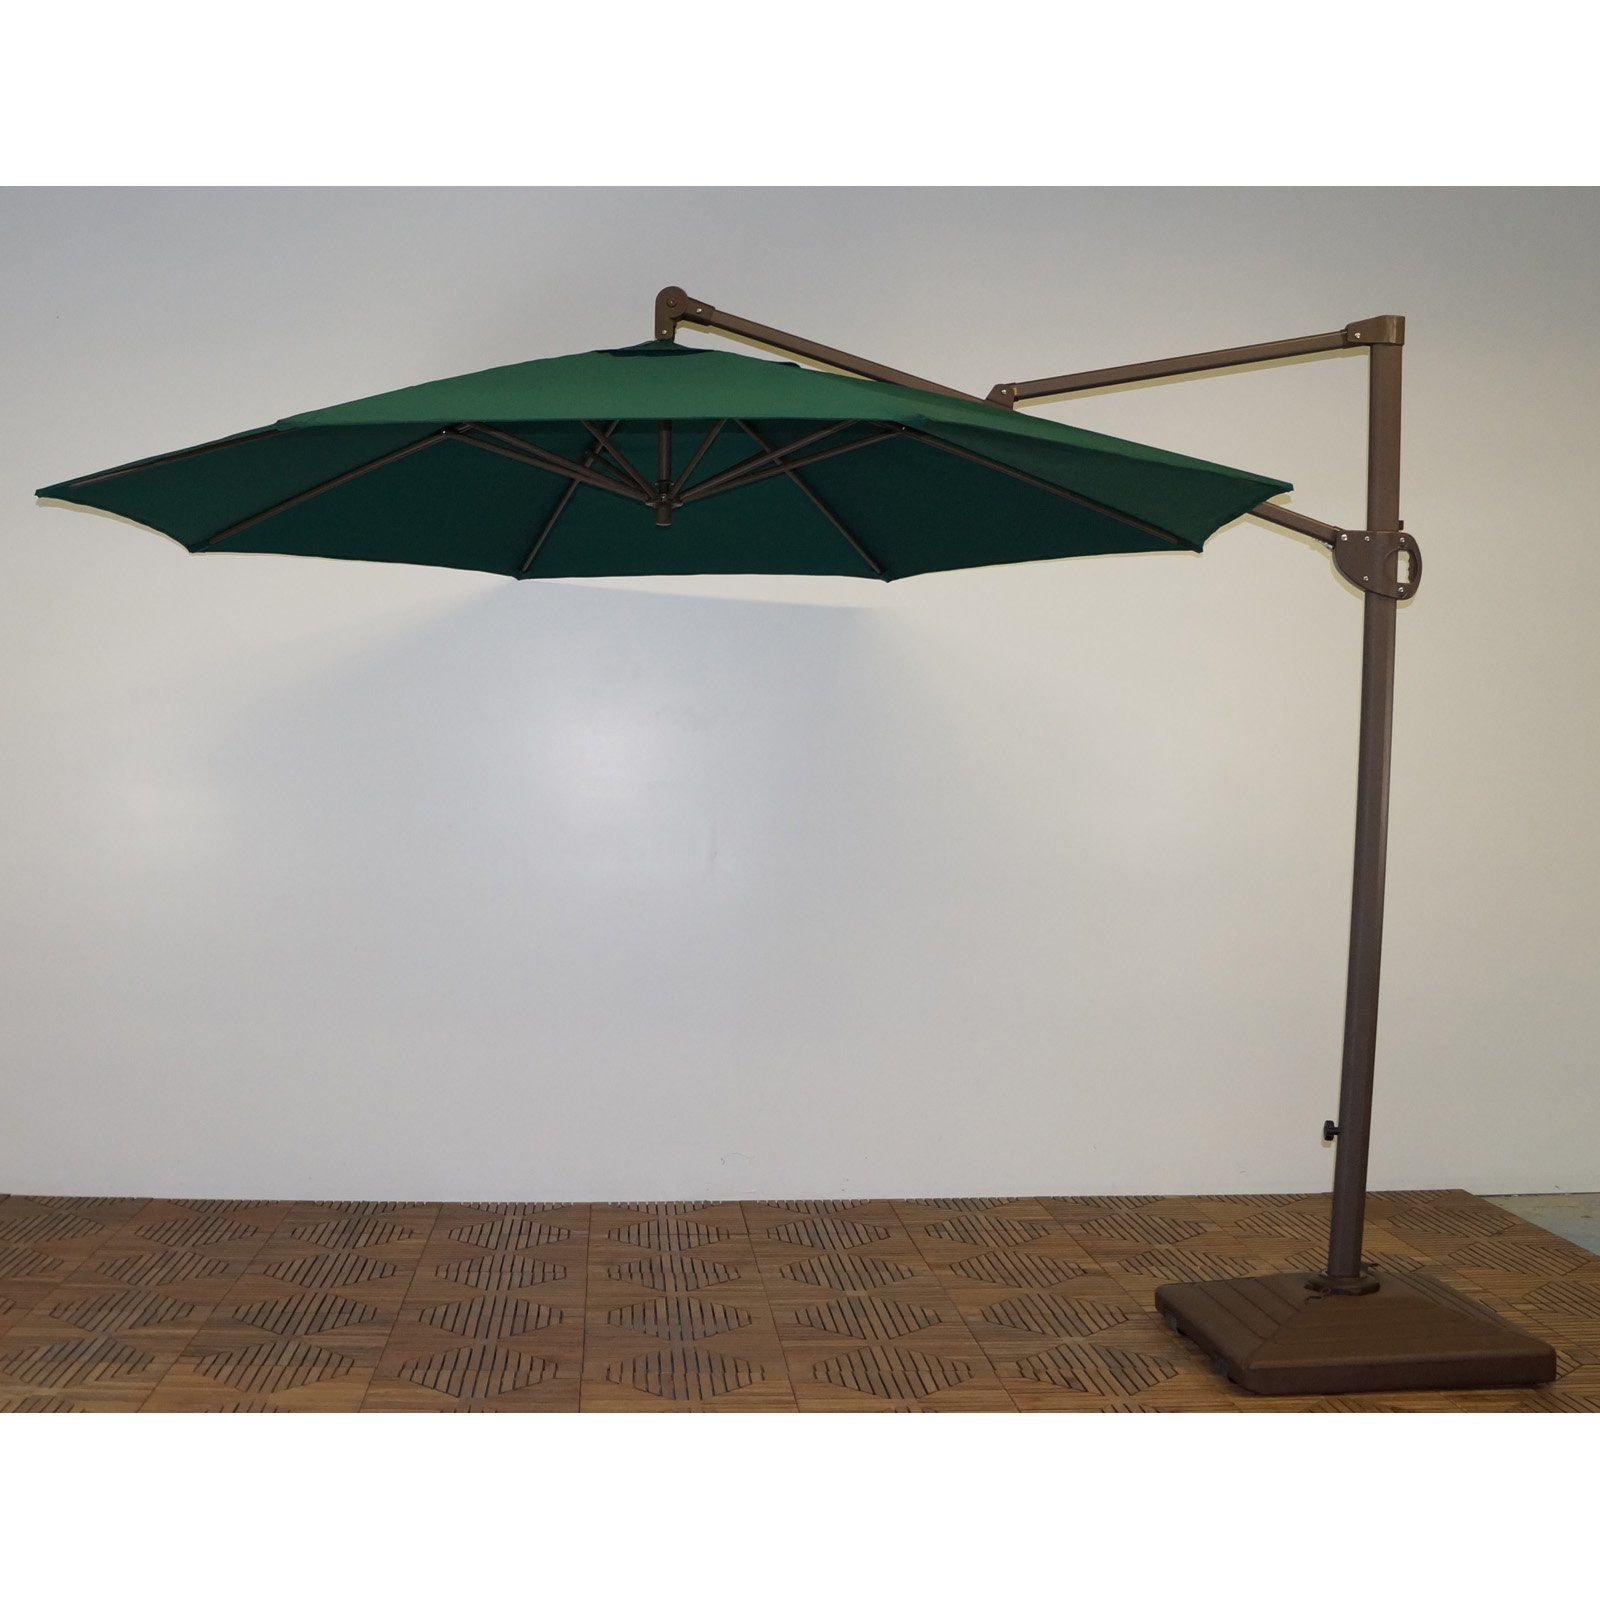 shade trends 11 ft trigger lift cantilever offset umbrella from